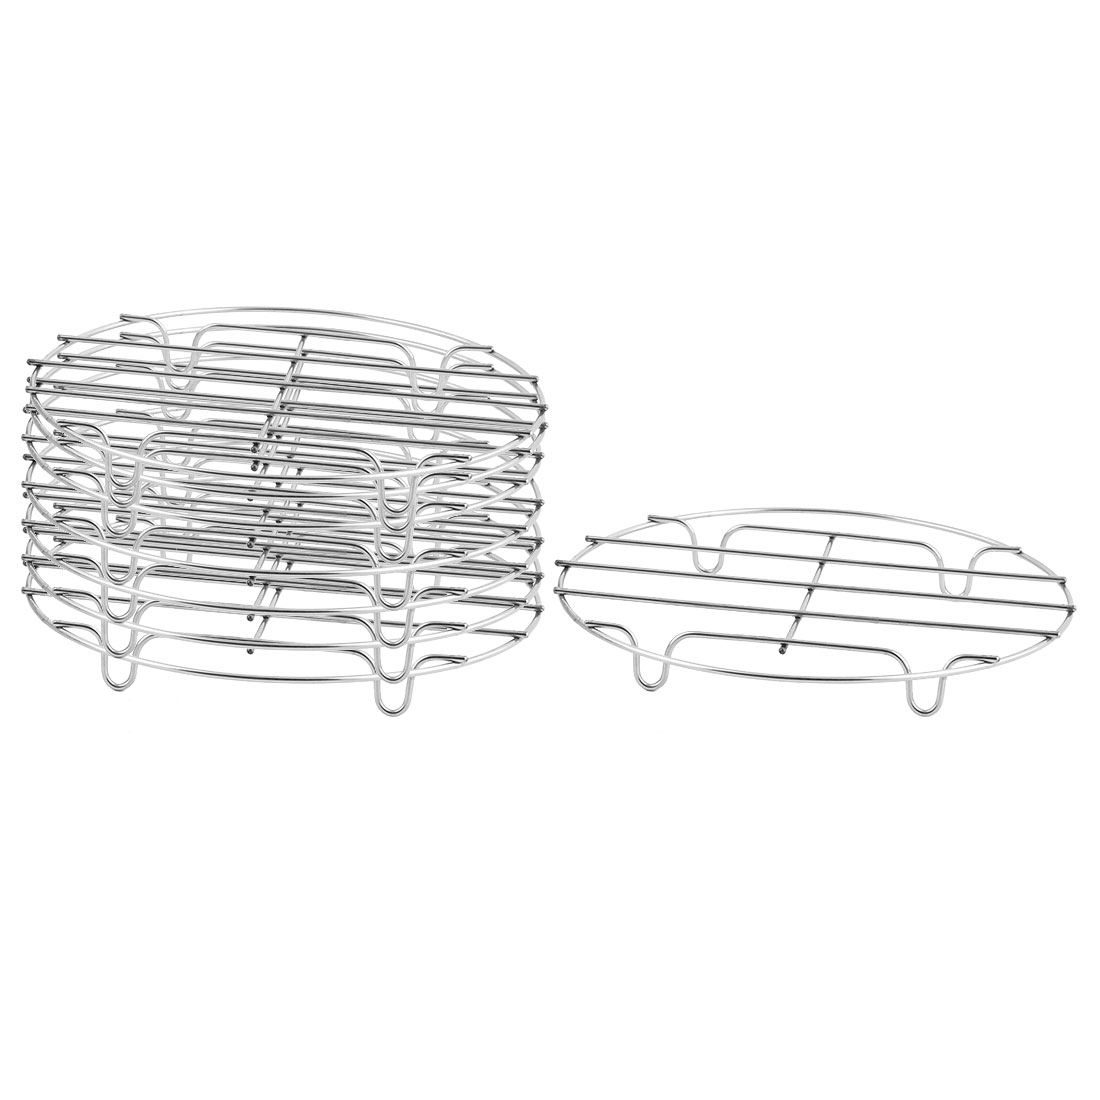 Kitchen Stainless Steel Pot Holder Cooking Tool Steamer Rack Silver Tone 8 Pcs